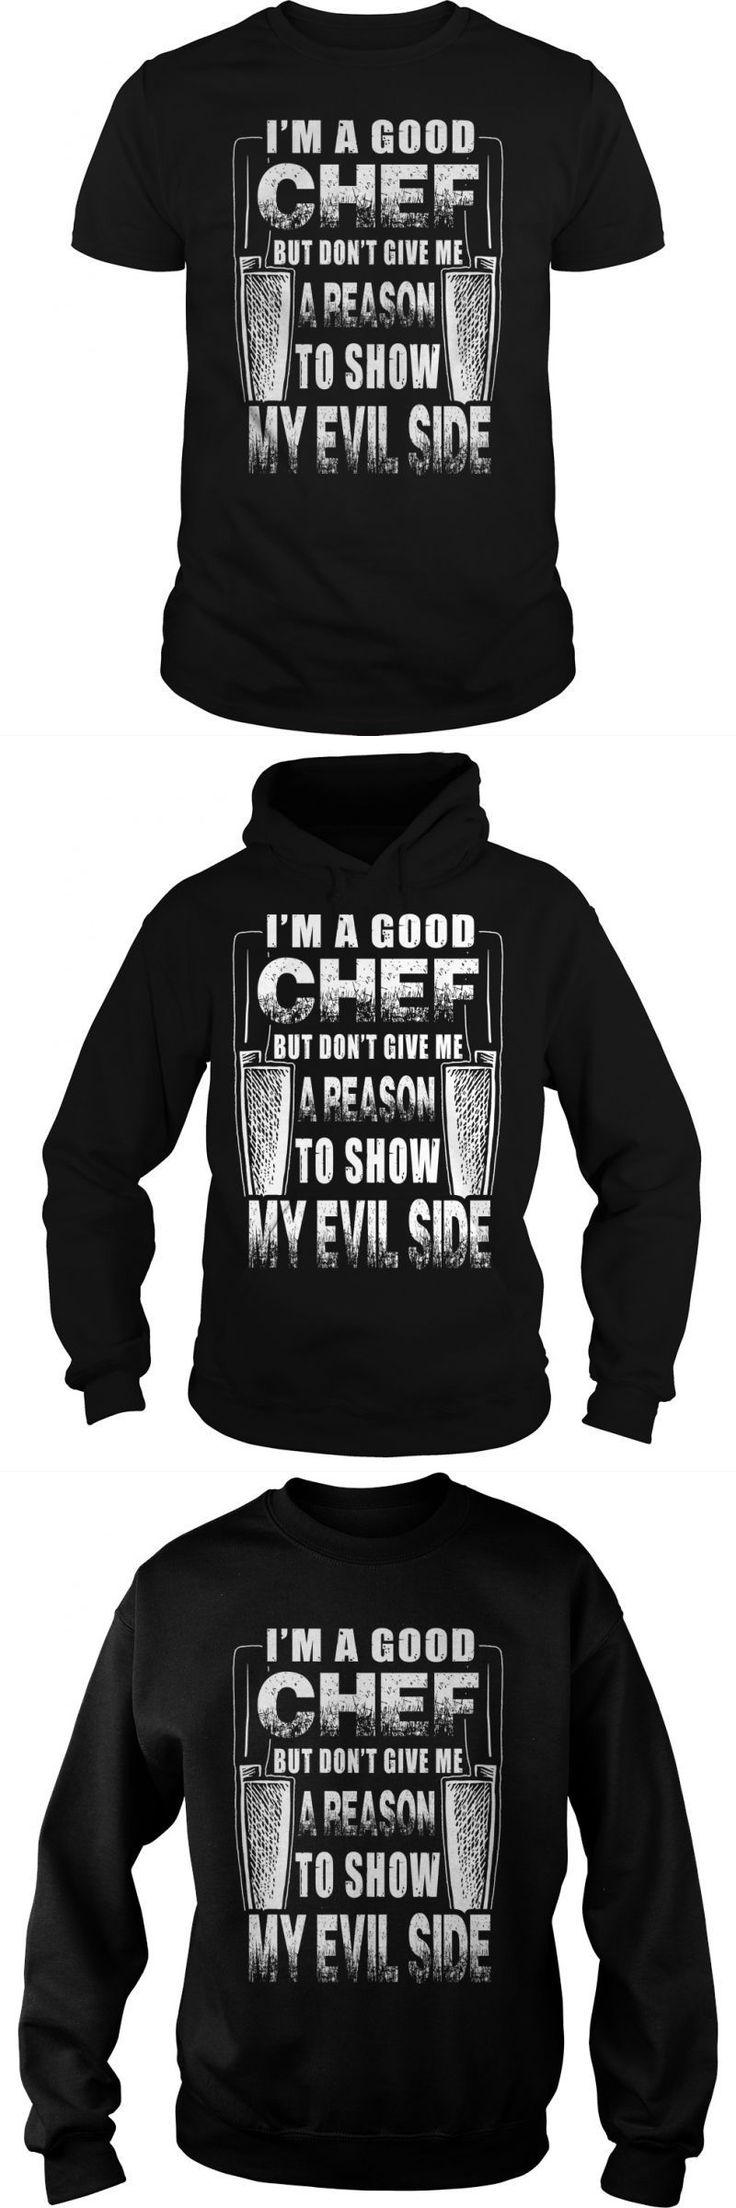 Just For Who Loves Chef     Guys Tee Hoodie Sweat Shirt Ladies Tee Youth Tee Guys V-Neck Ladies V-Neck Unisex Tank Top Unisex Longsleeve Tee Muppets Swedish Chef T Shirt T Shirt Chef De Projet I'm A Chef T Shirt T Shirt For Chef